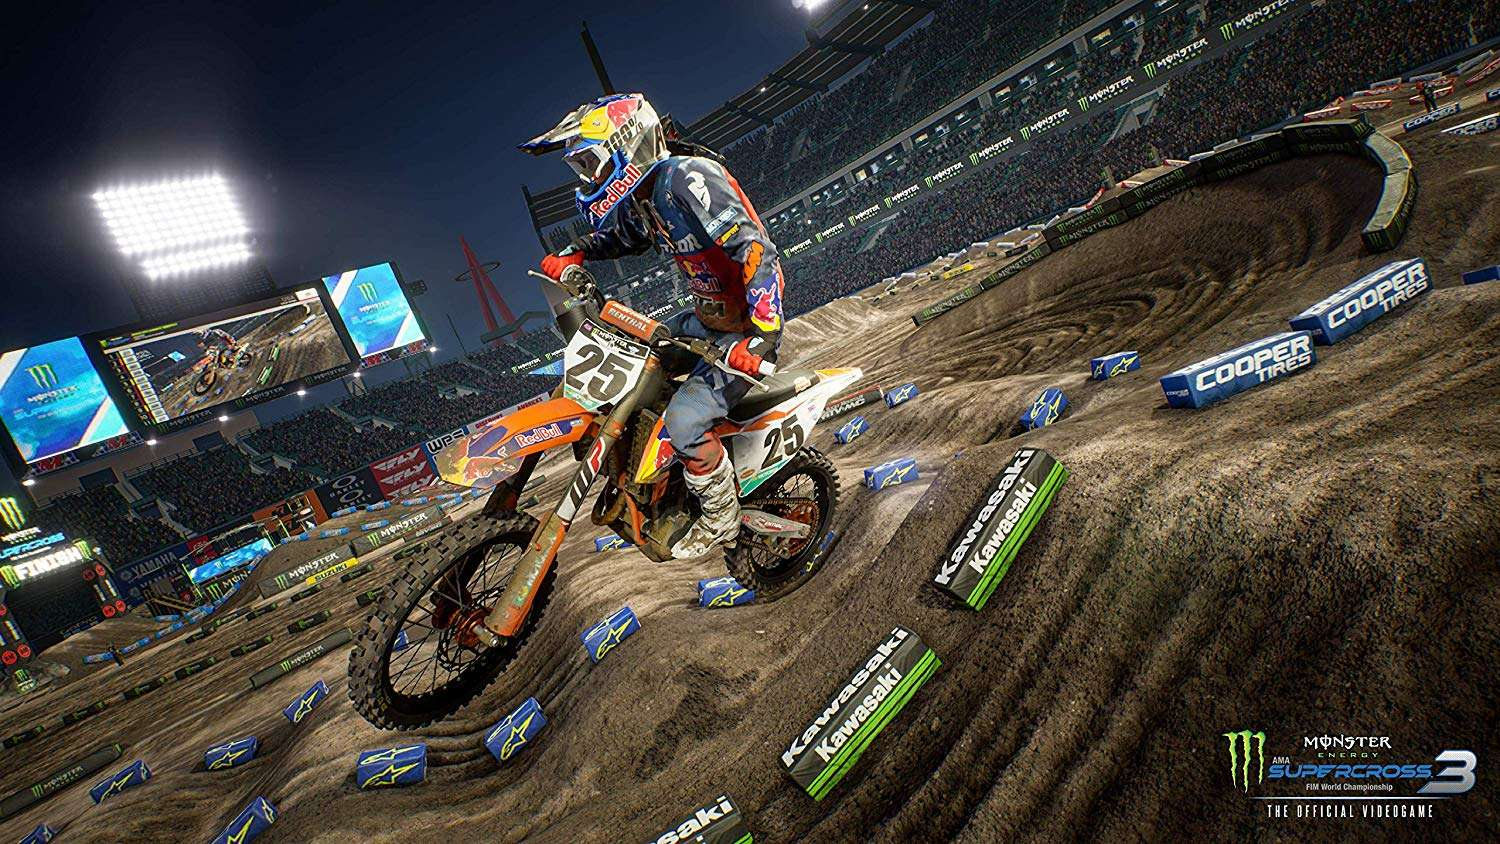 Monster Energy Supercross: The Official Videogame 3 #6